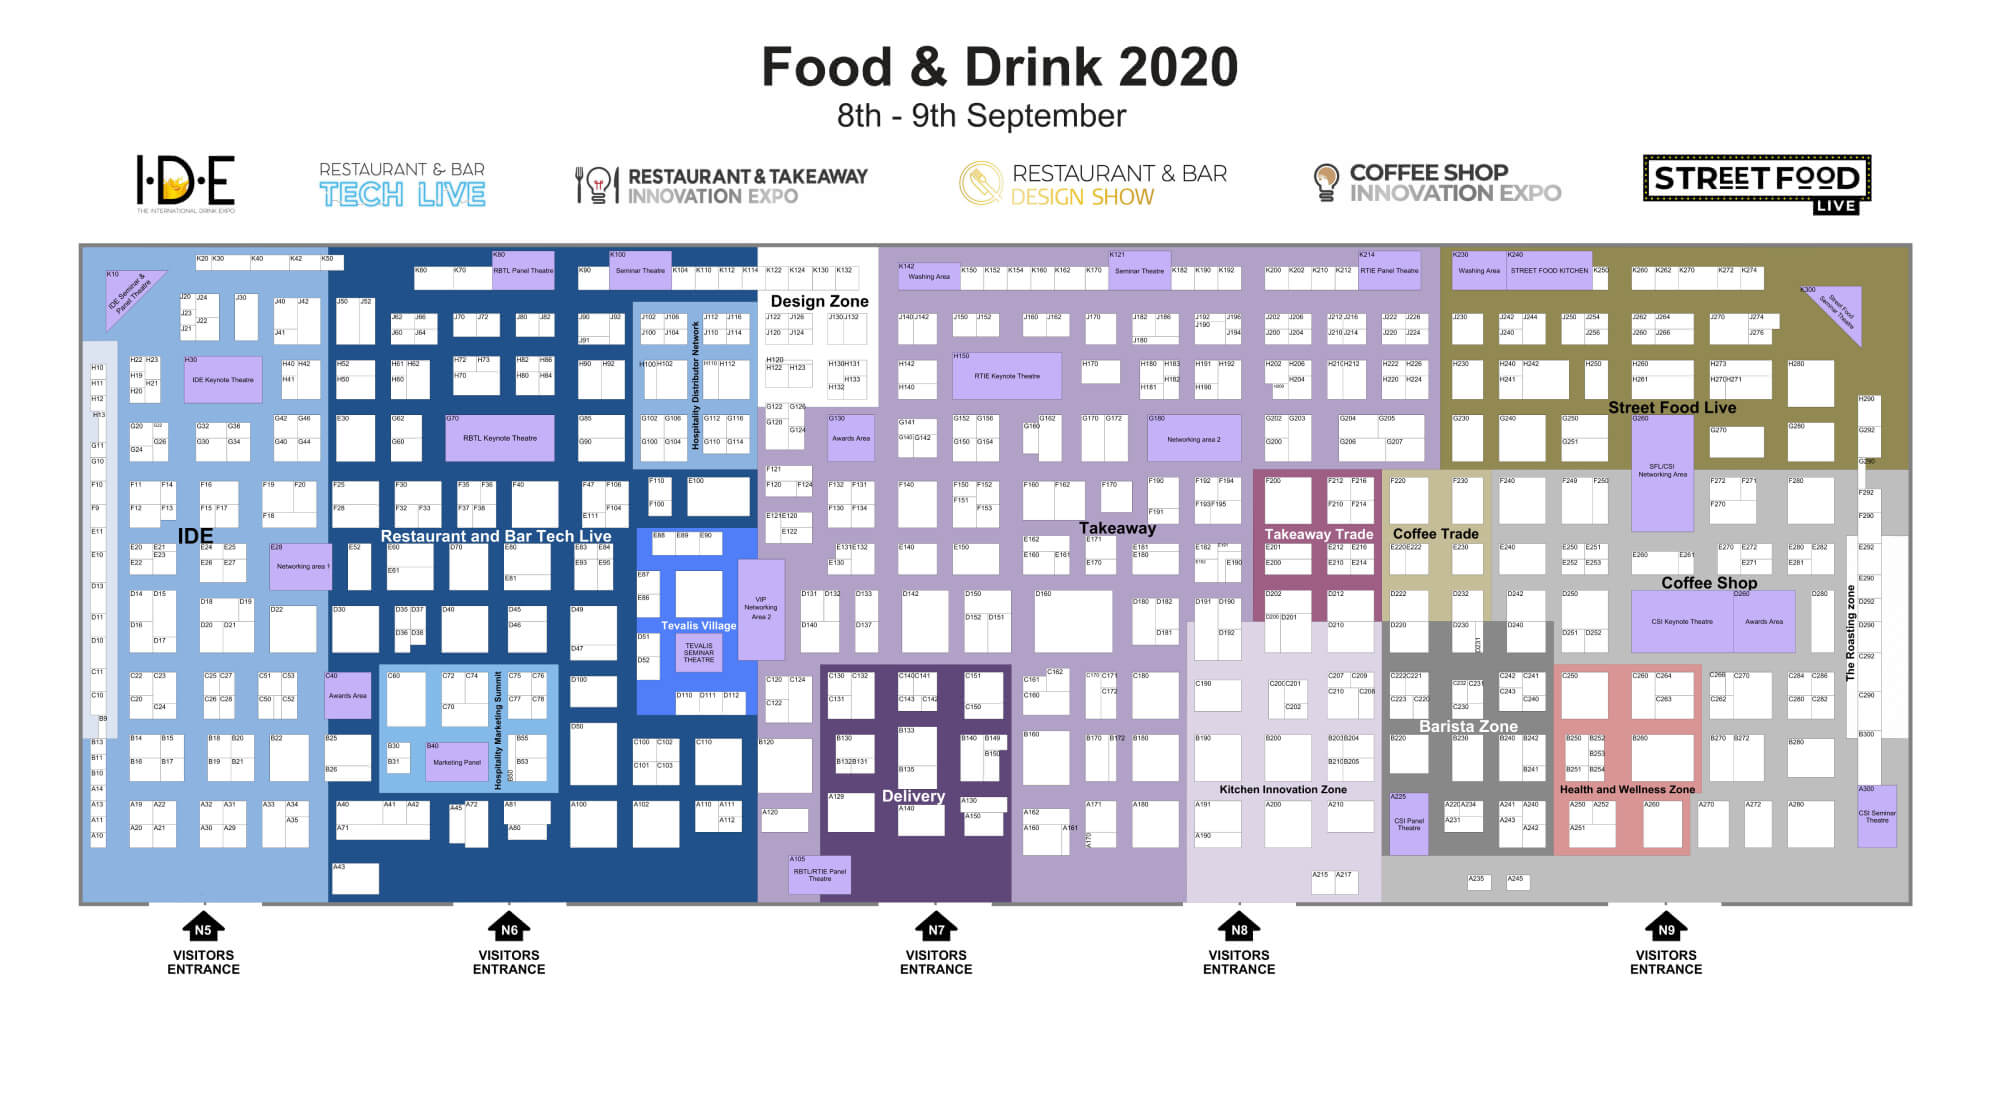 The International Drink Expo floorplan